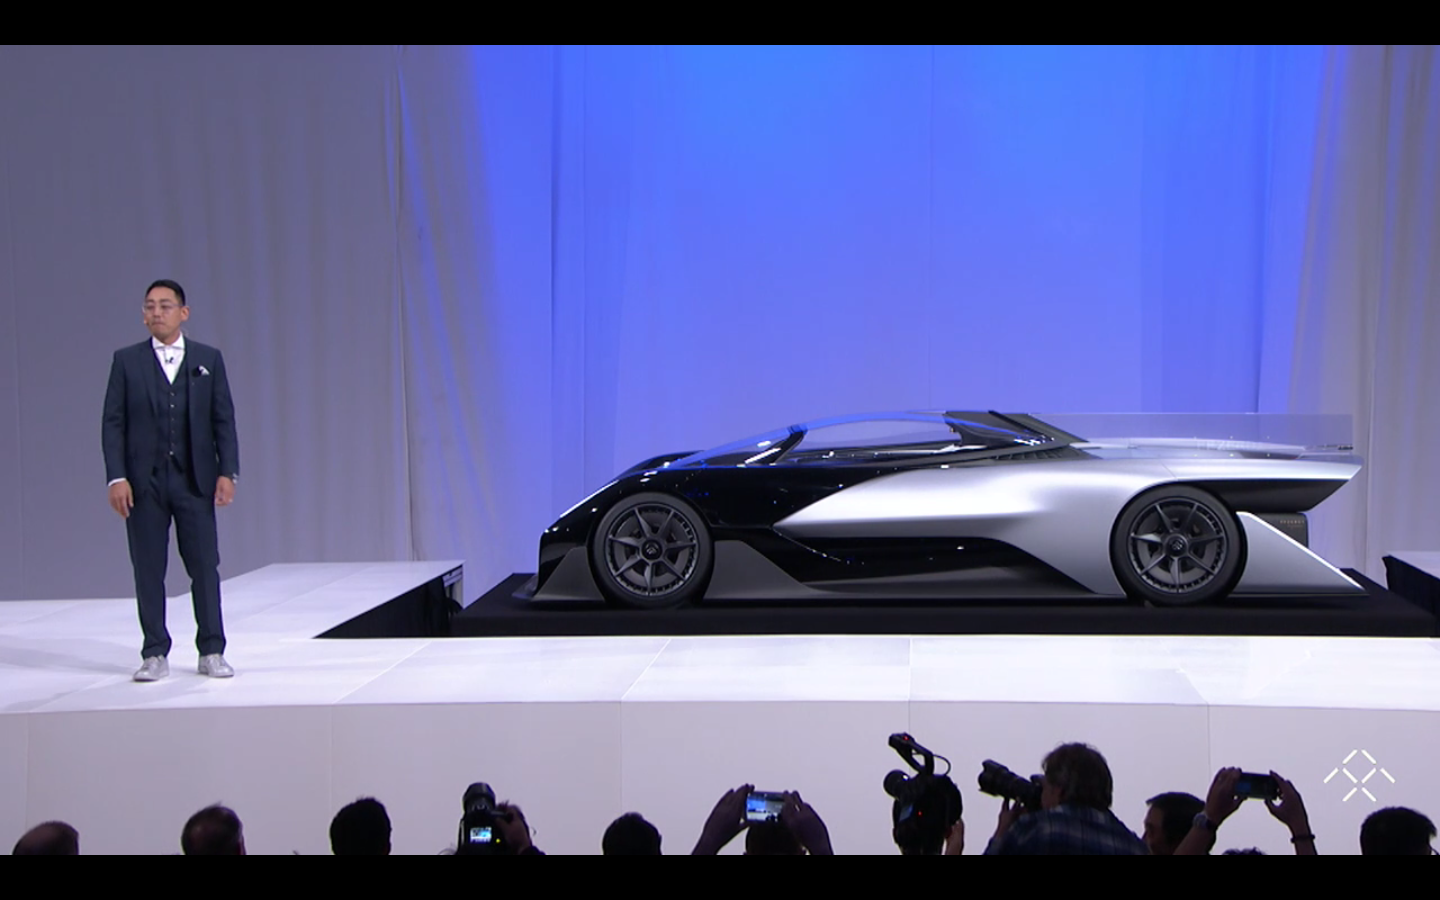 Faraday Future FFZERO1 concept car at CES 2016